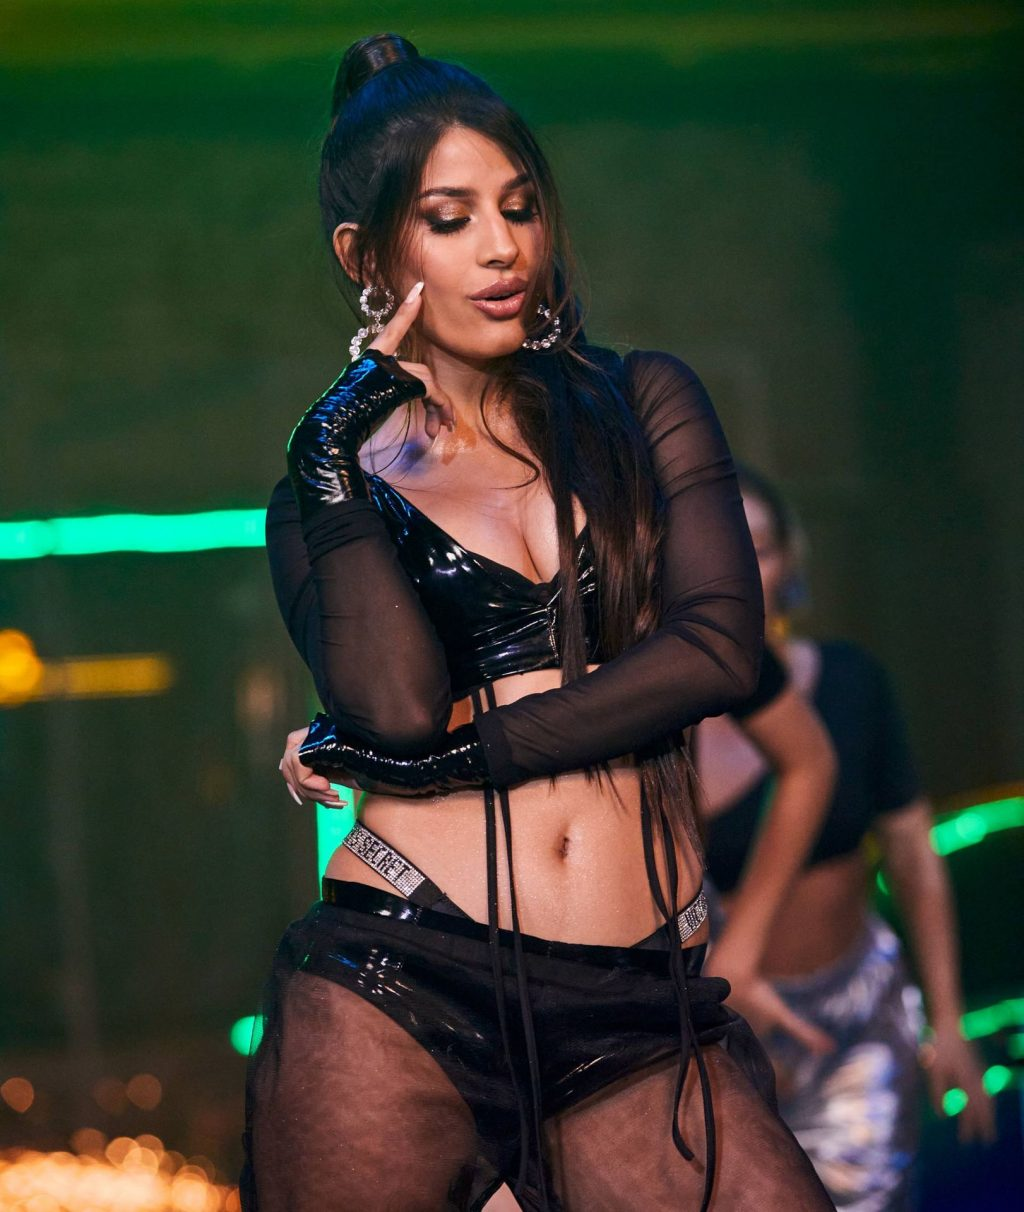 Jasmin Walia Shows Her Tits and Ass in a Want Me Video Shoot in London (22 Photos + Video)